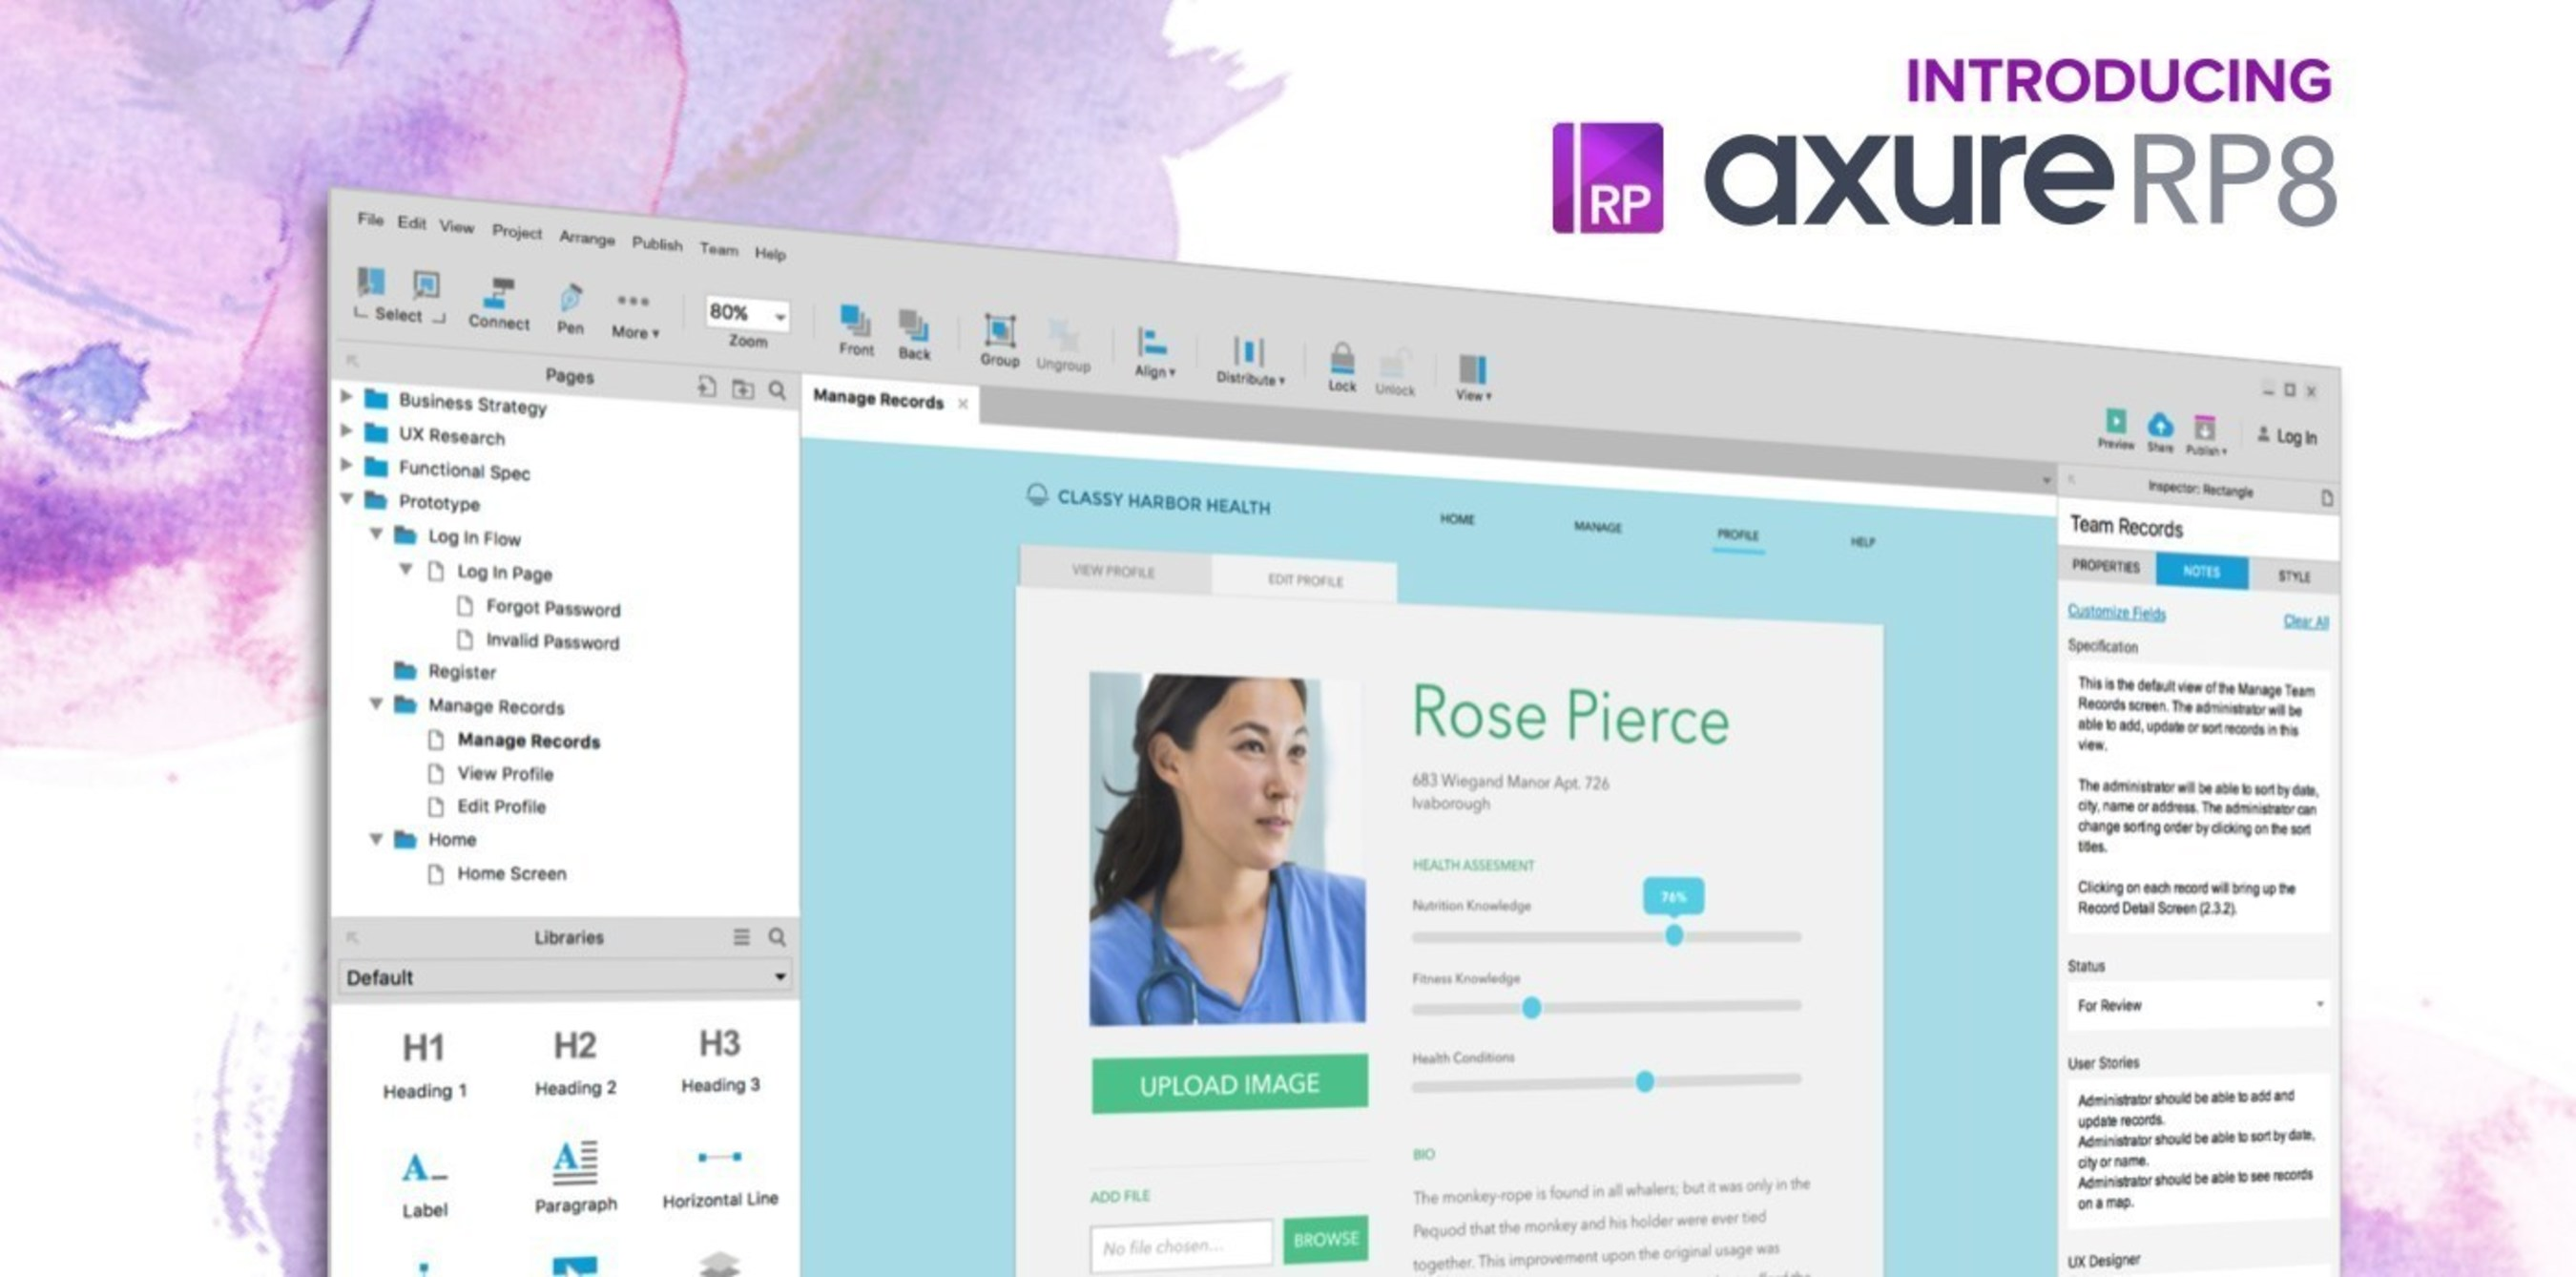 Axure Software Solutions Inc., whose industry leading software design tool is used by 86% of Fortune 100 companies, today released its much anticipated Axure RP 8, created to help teams design solutions to complex business challenges.